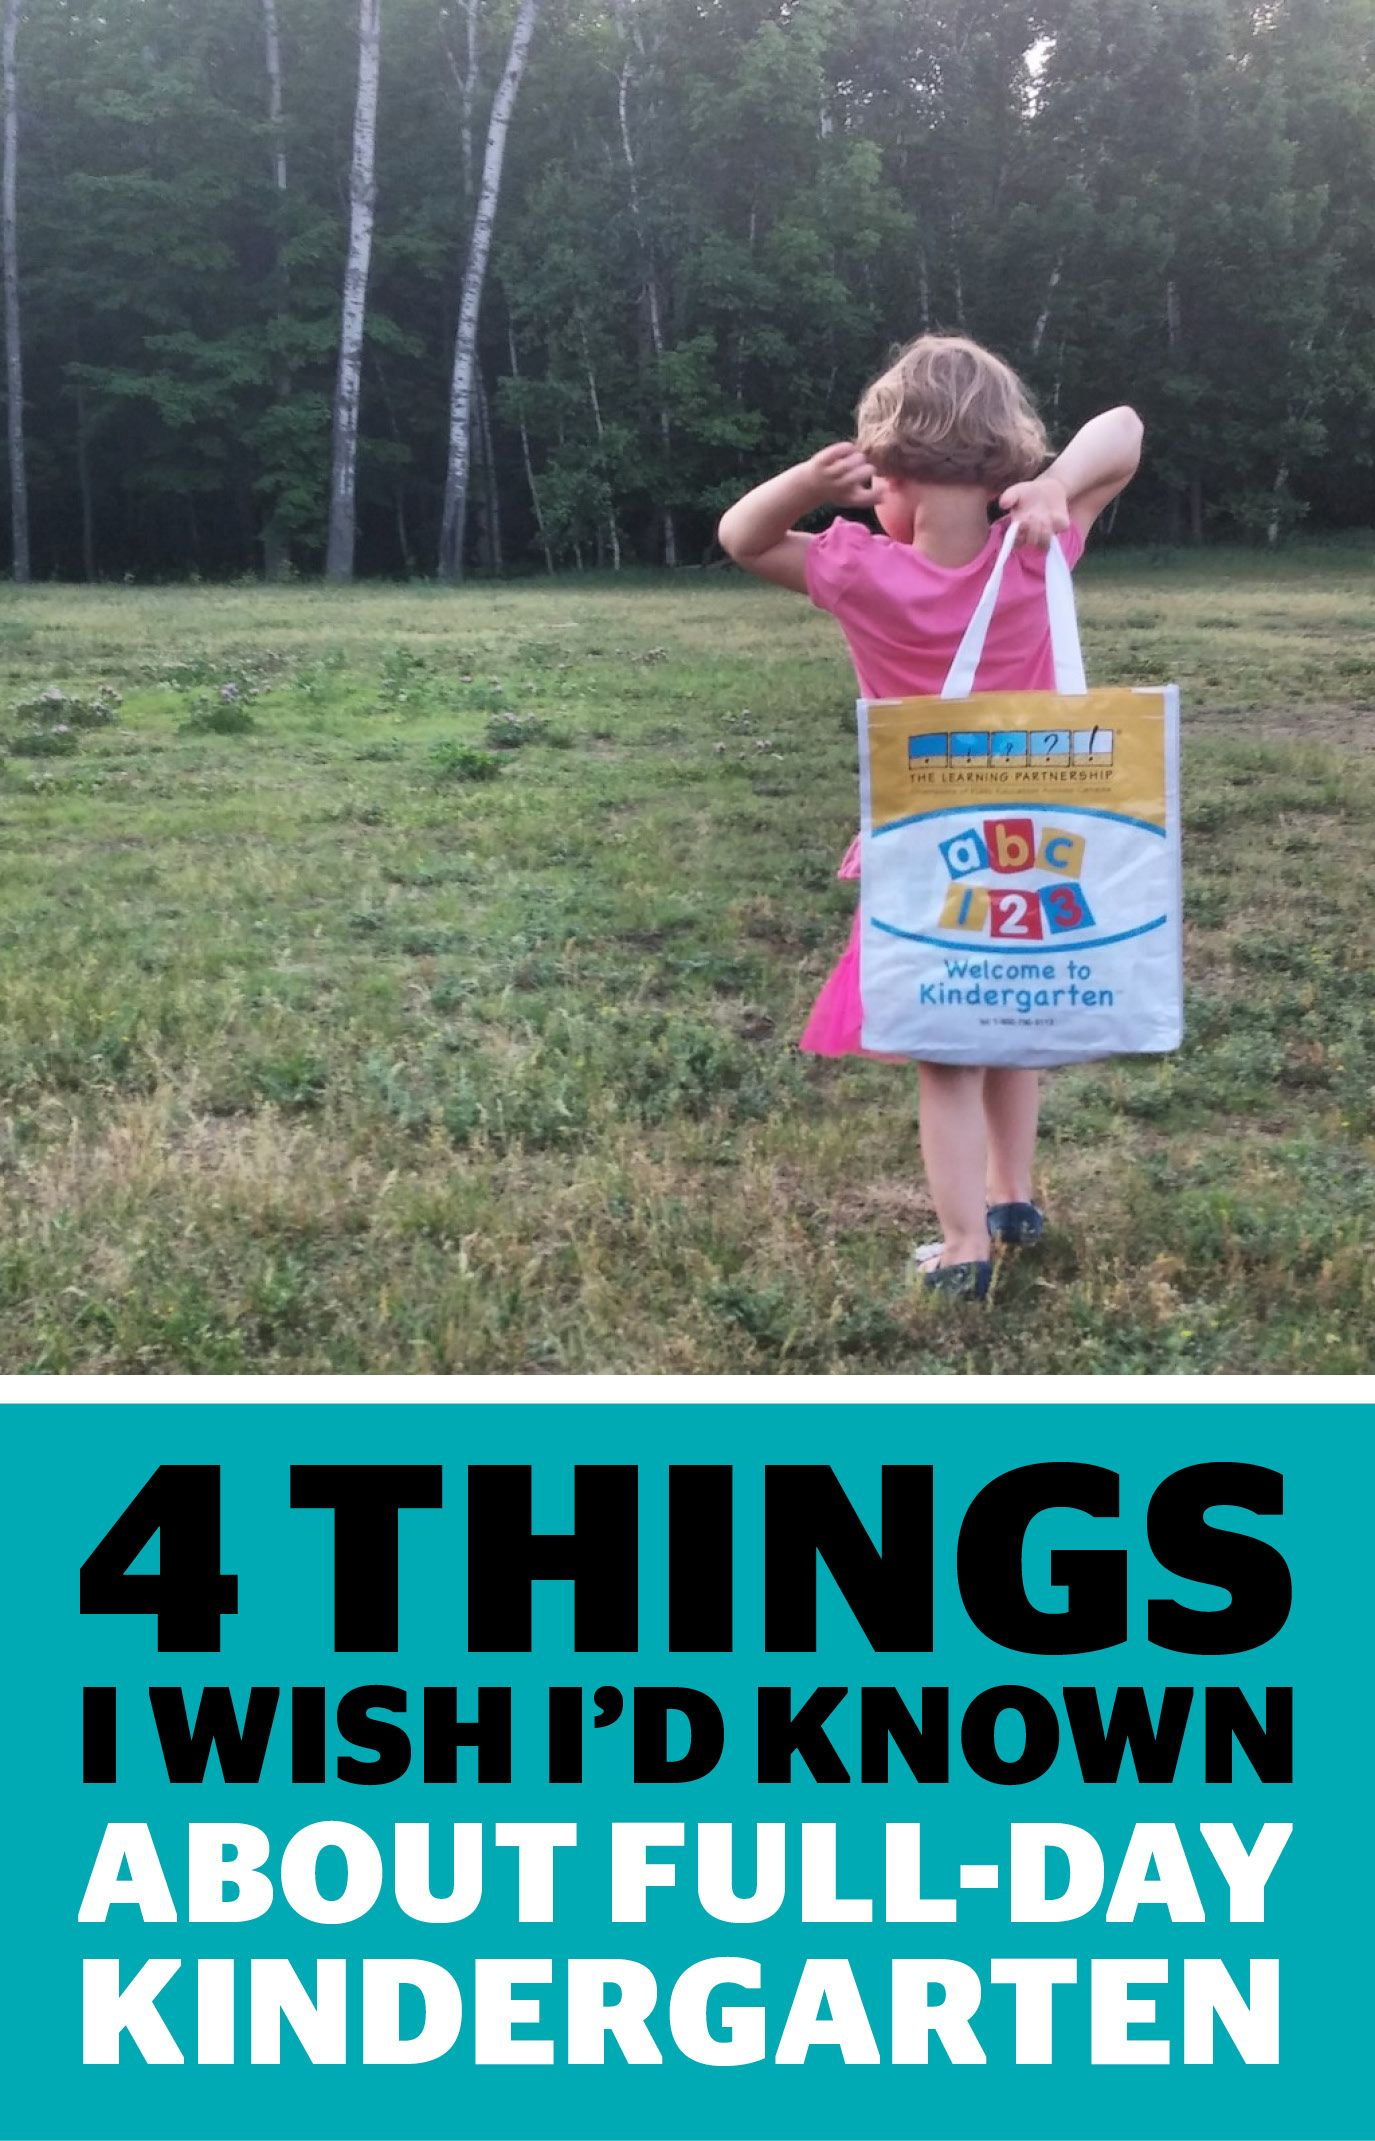 4 Things I Wish I'd Known About Full-day Kindergarten